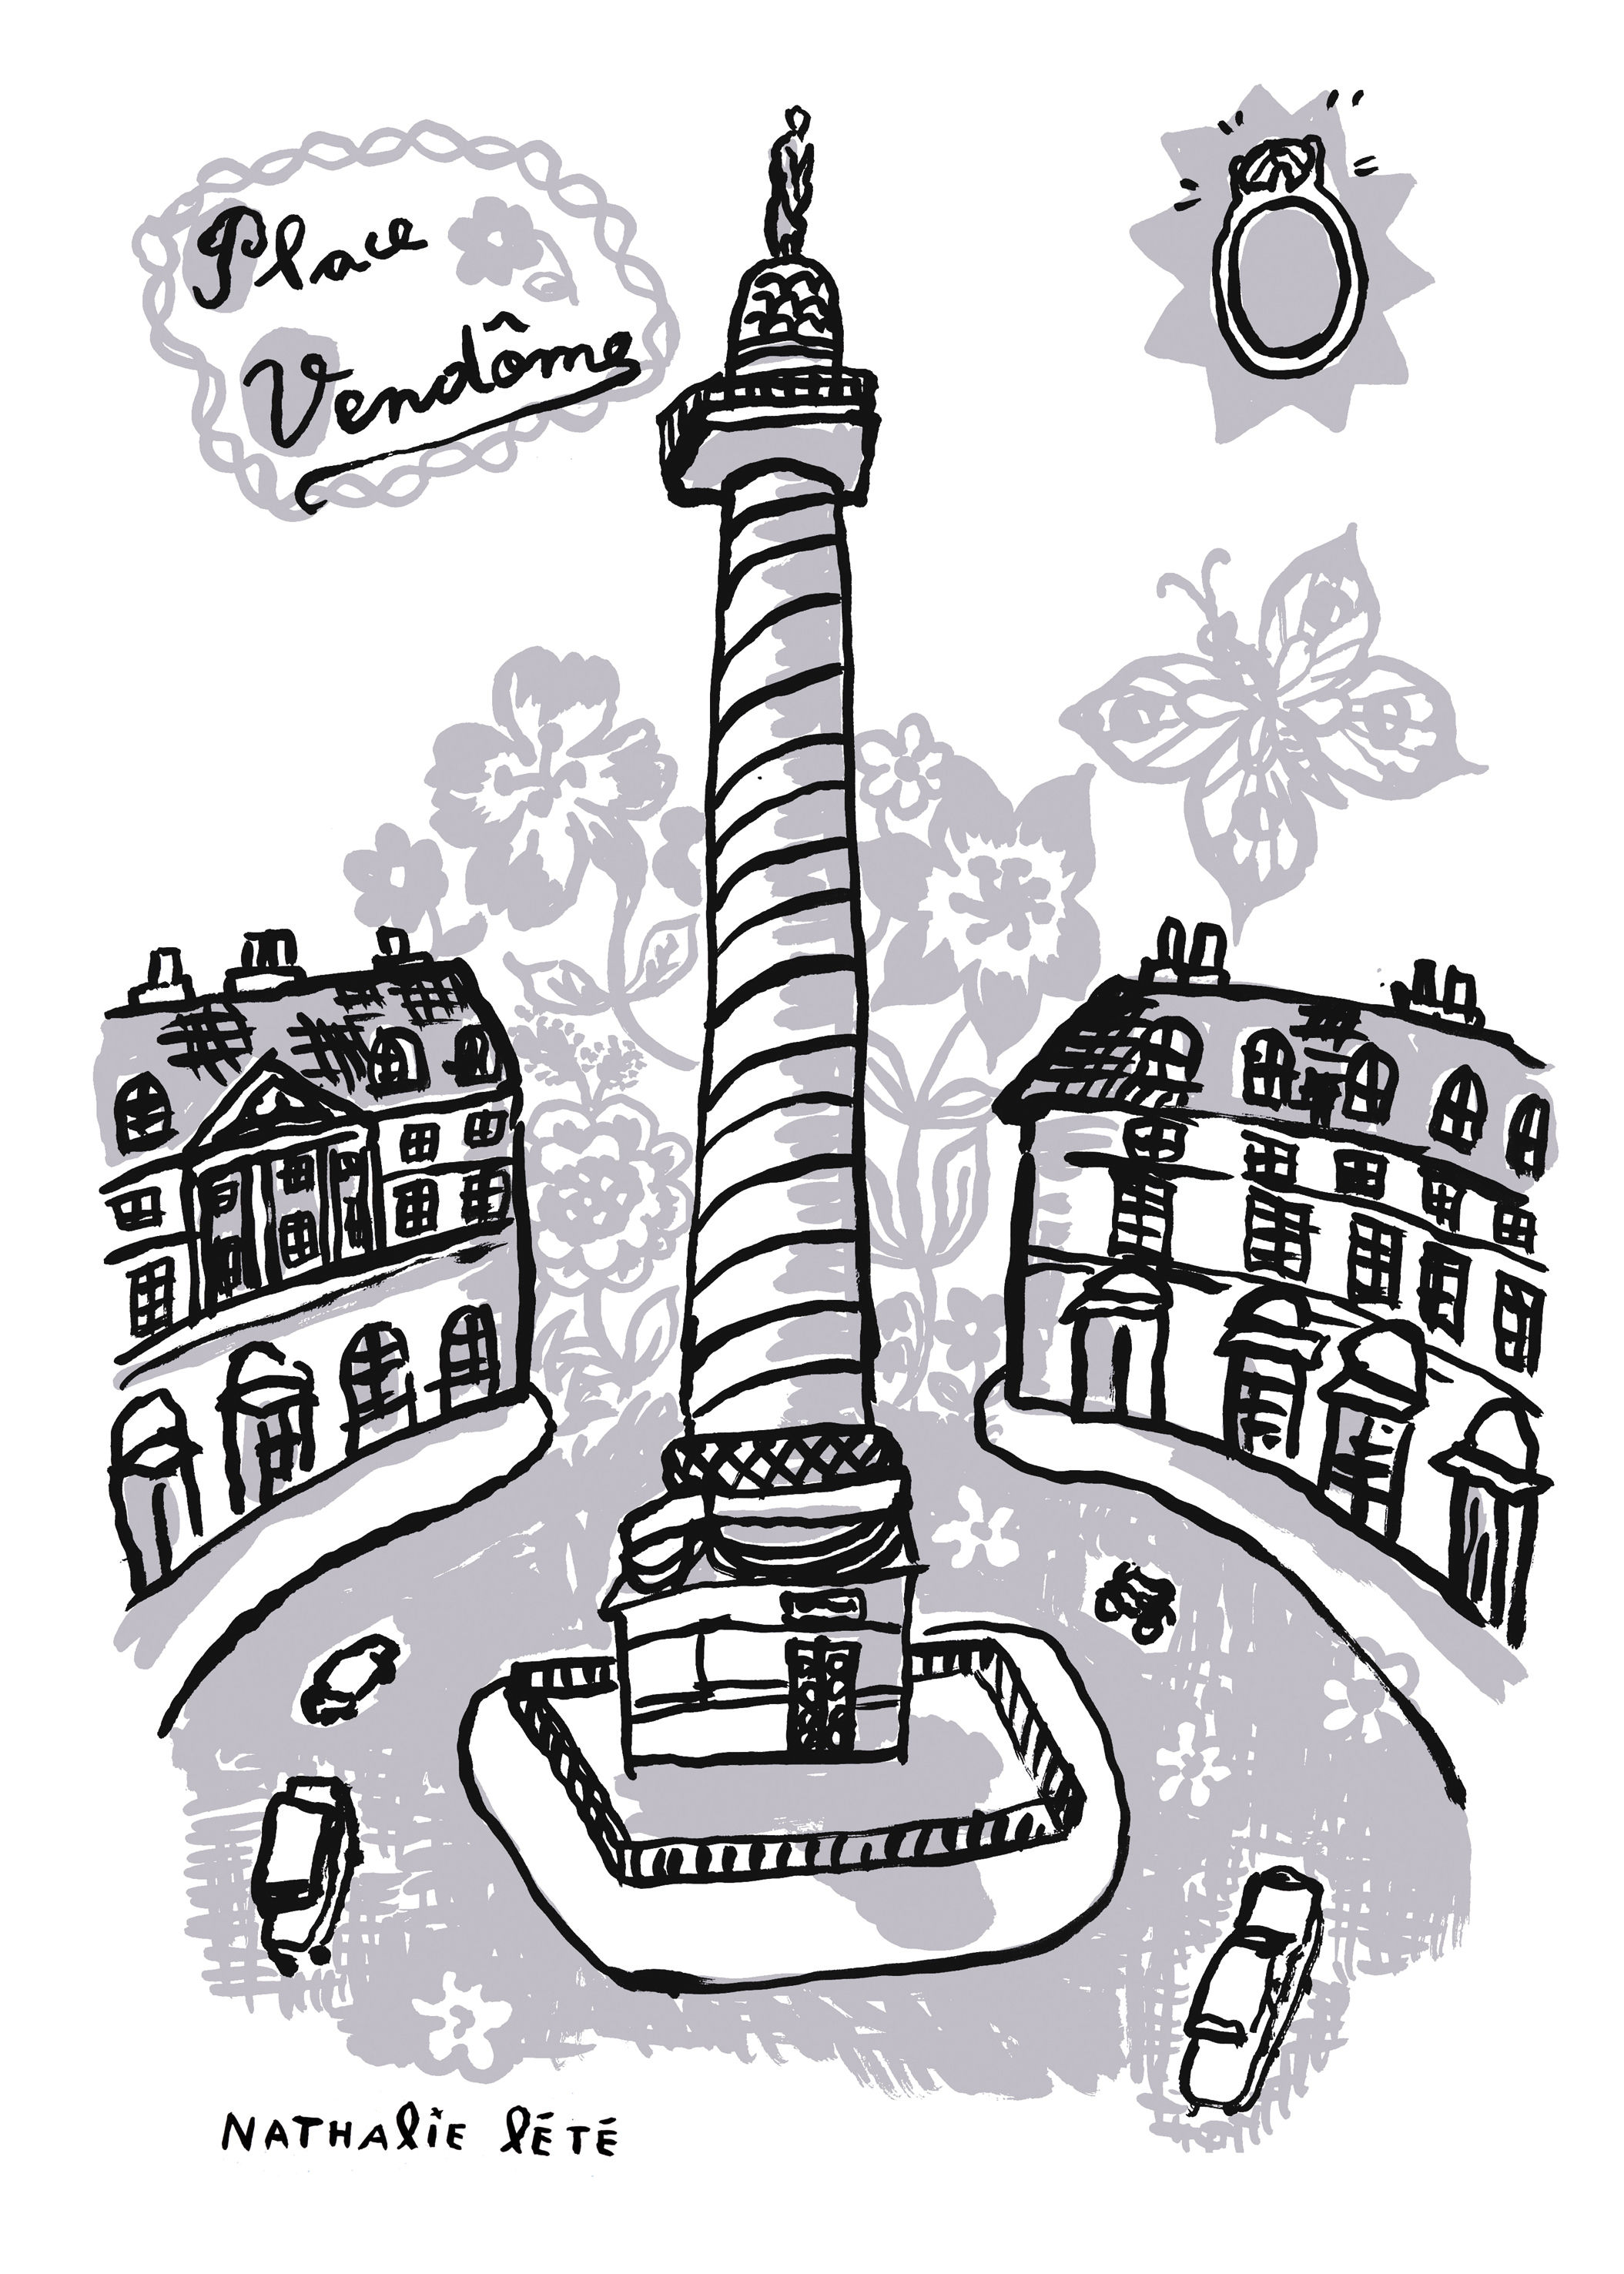 Decoration - Children's Home Accessories - Place Vendôme Sticker - 25 x 35 cm by Domestic - Grey - Vinyl